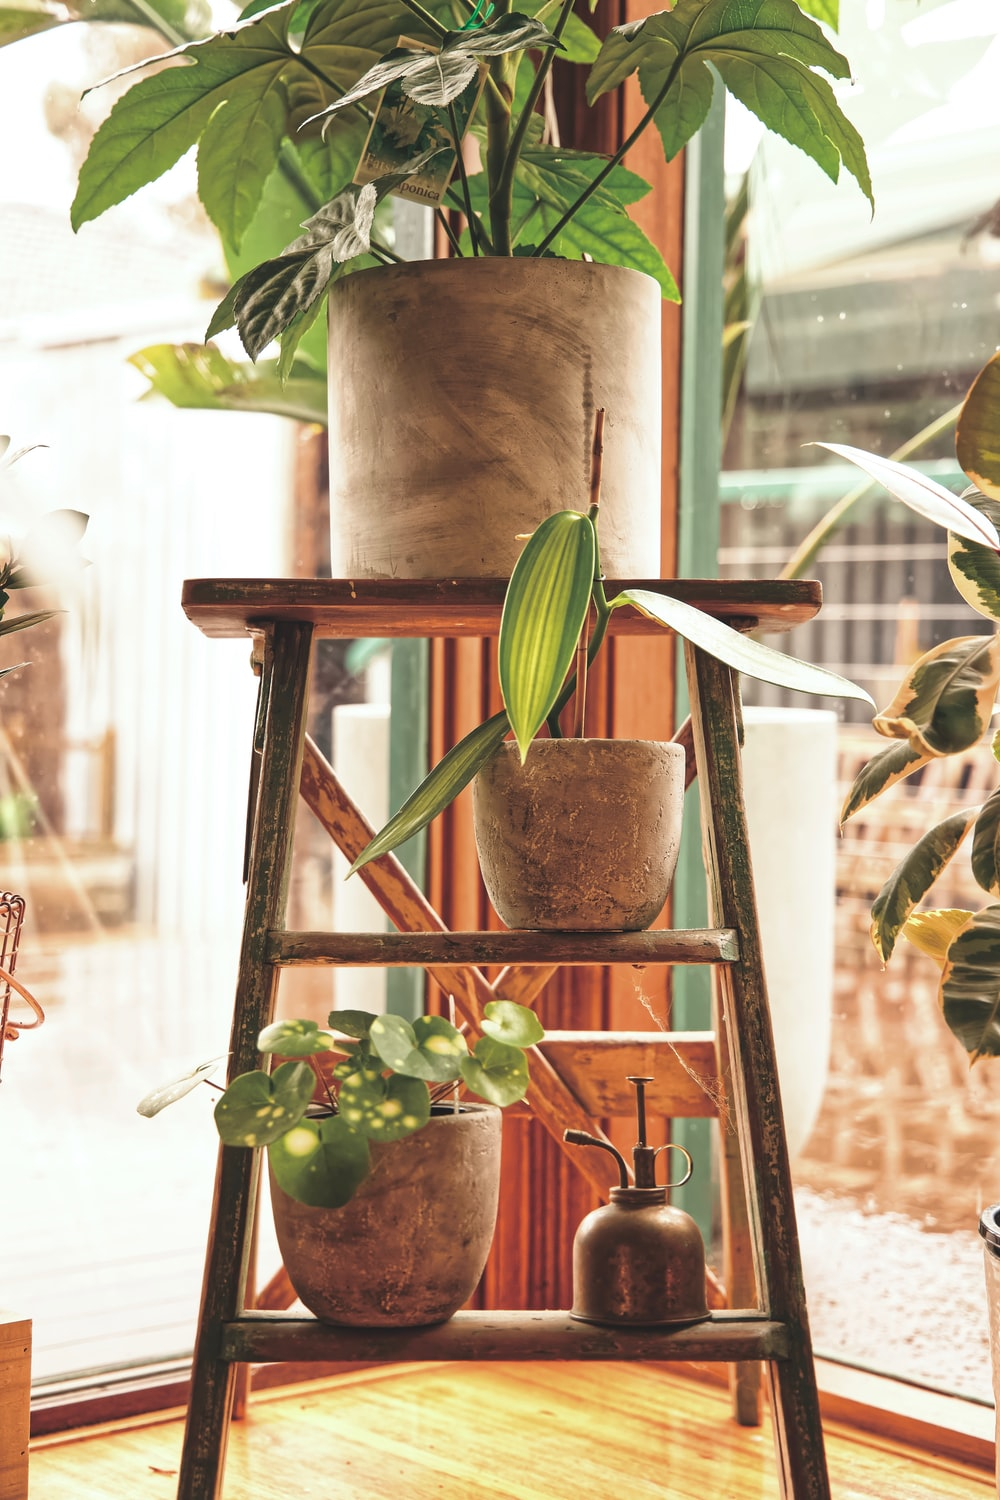 green-leafed plants in brown pots